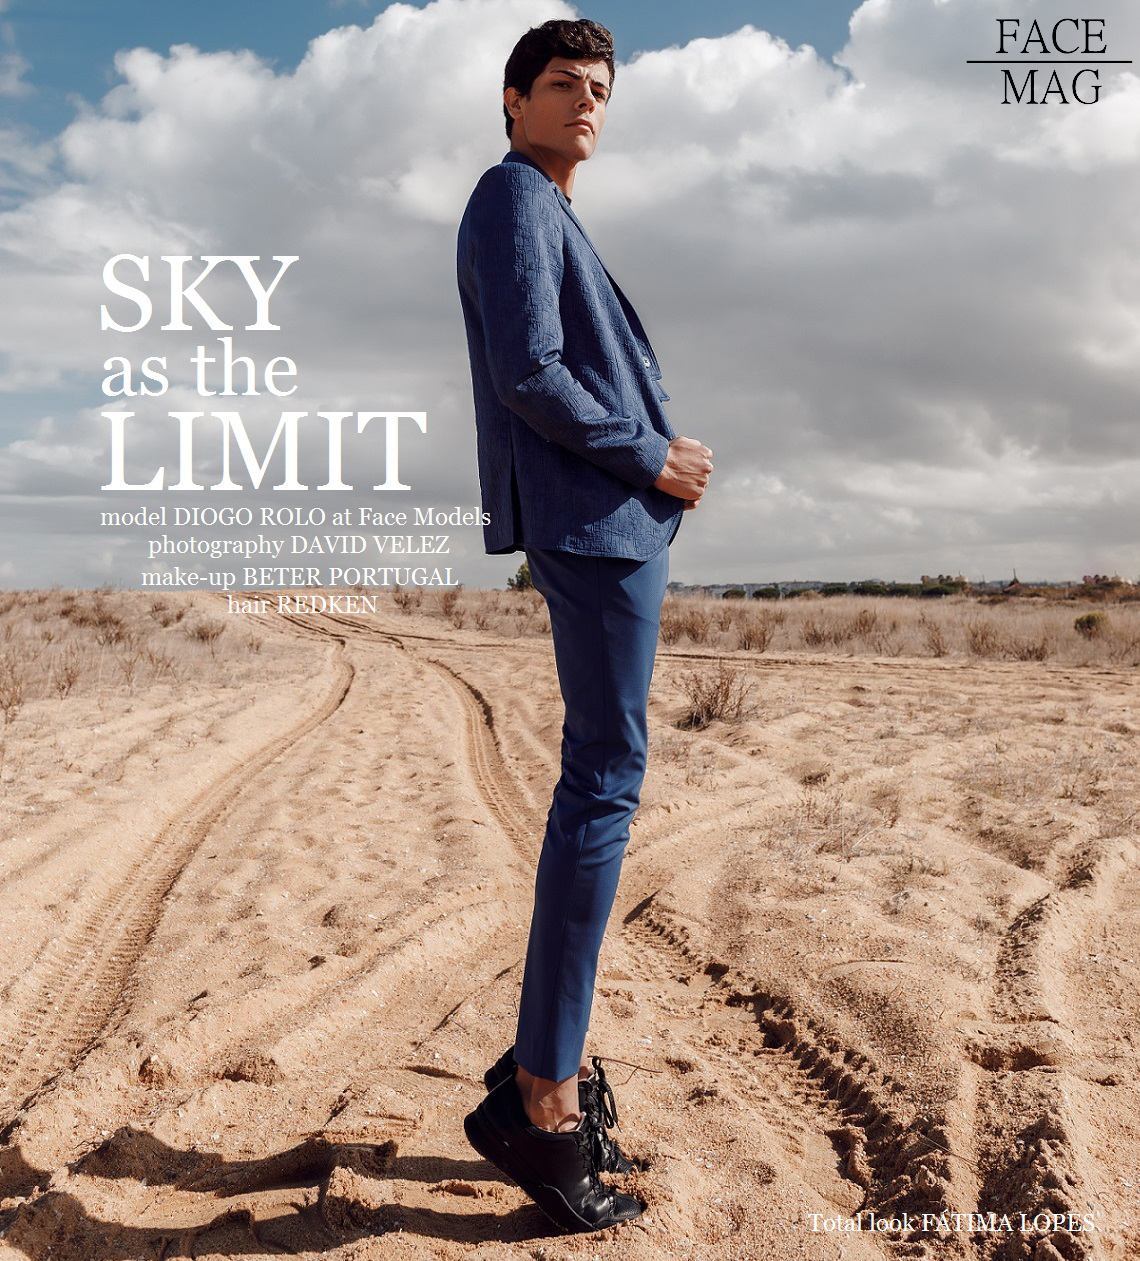 SKY AS THE LIMIT